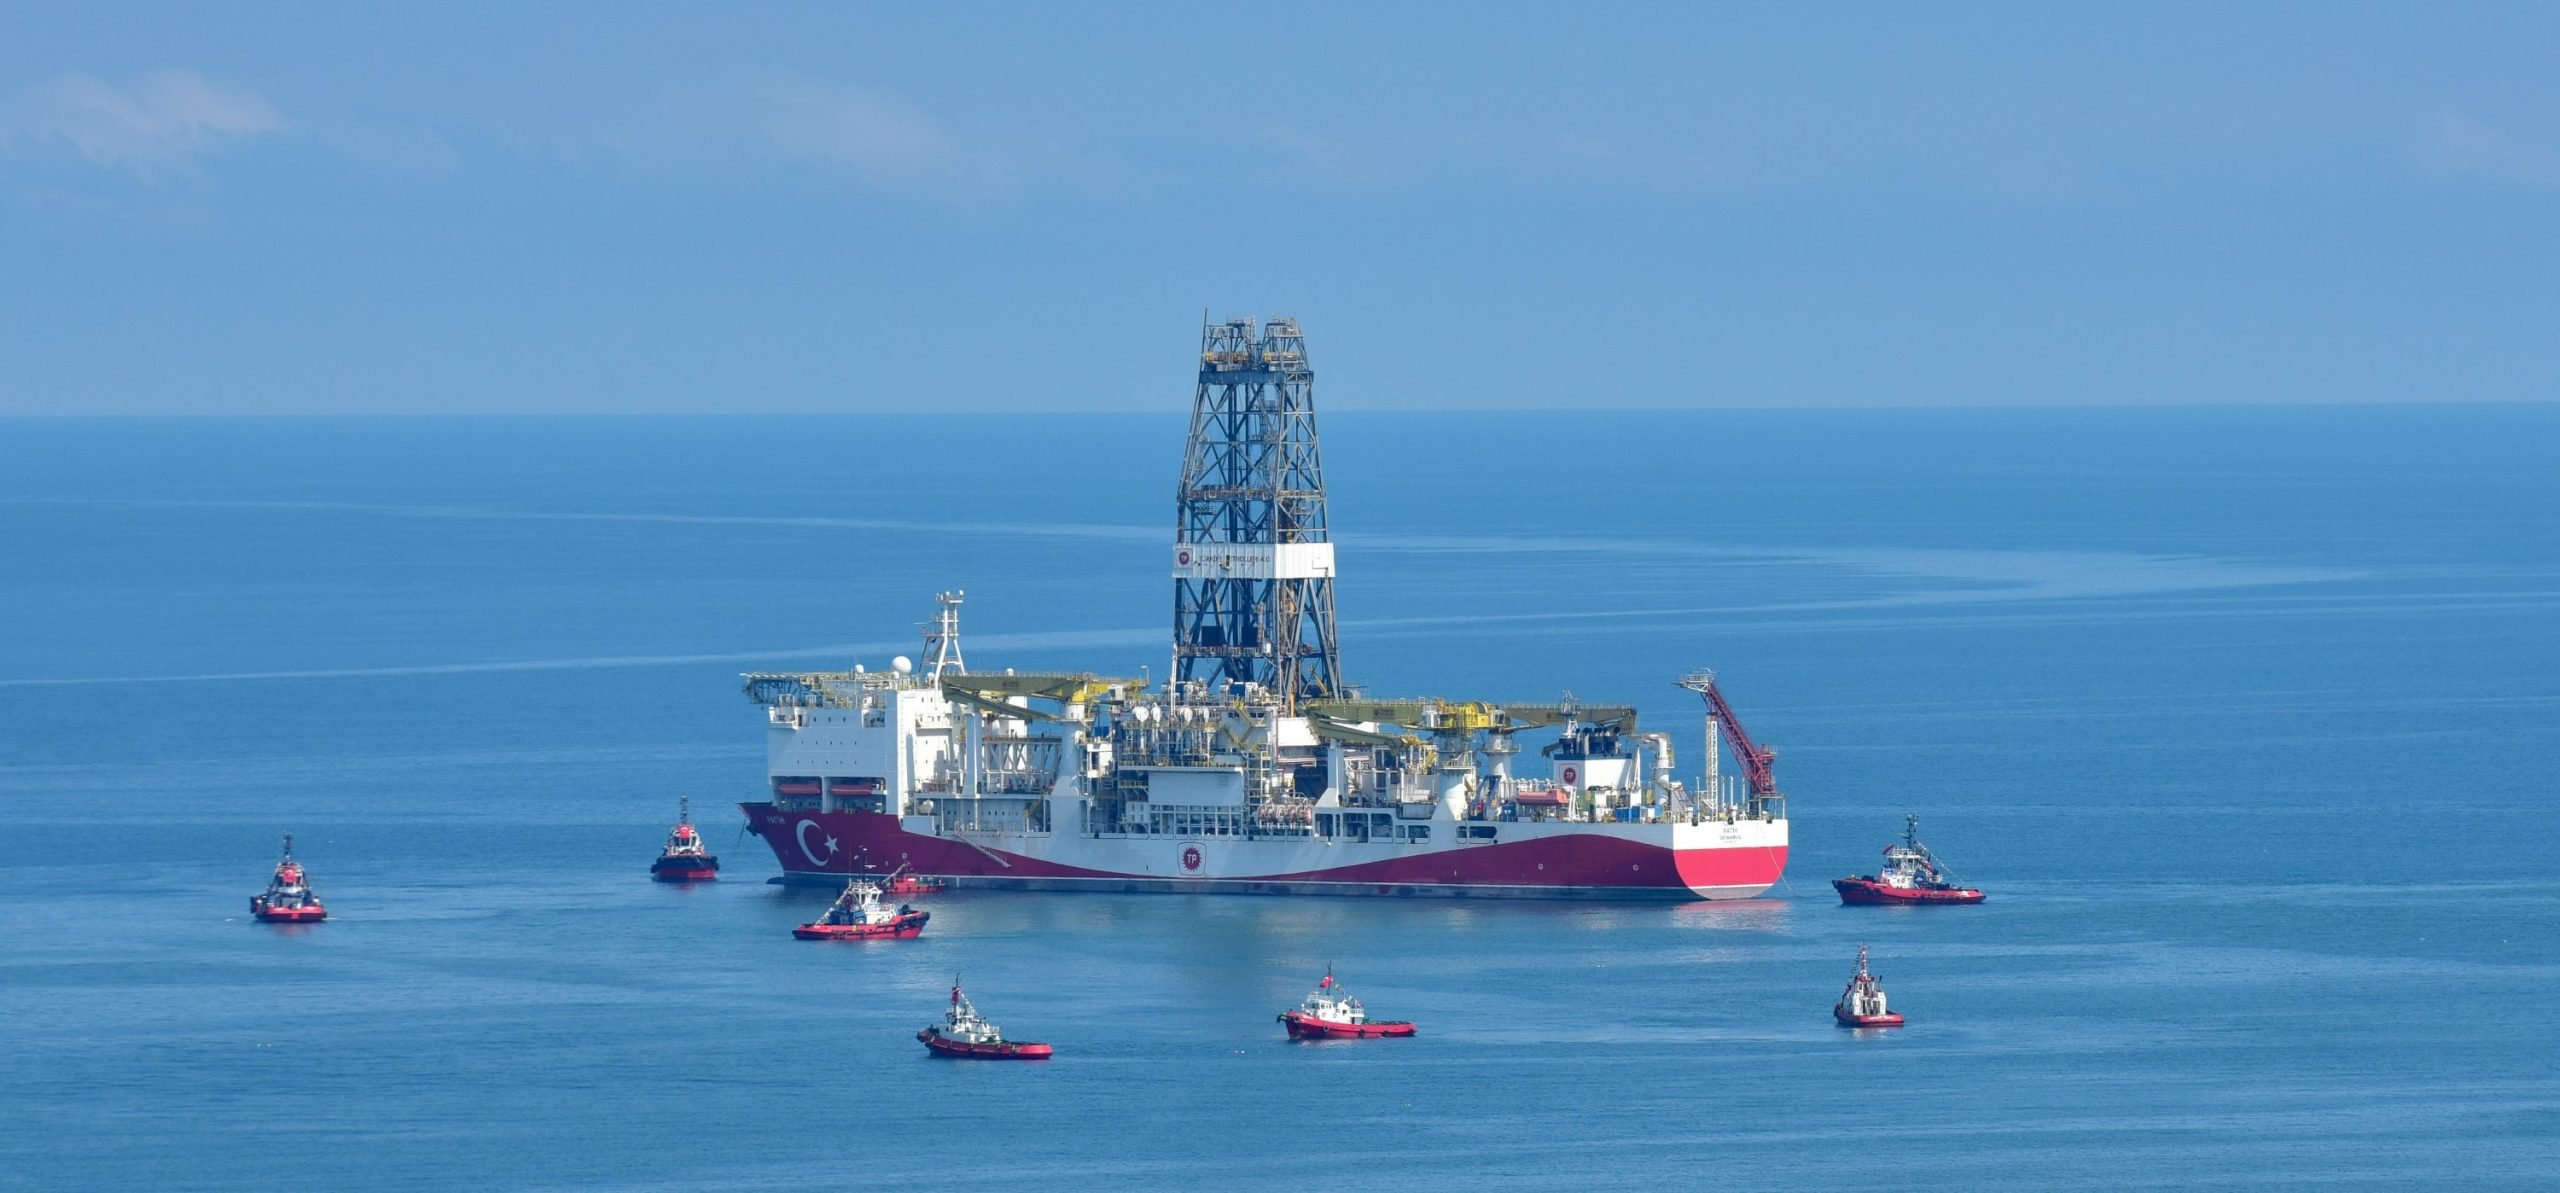 TURKEY'S NEWLY DISCOVERED GAS RESERVE IN BLACK SEA 16